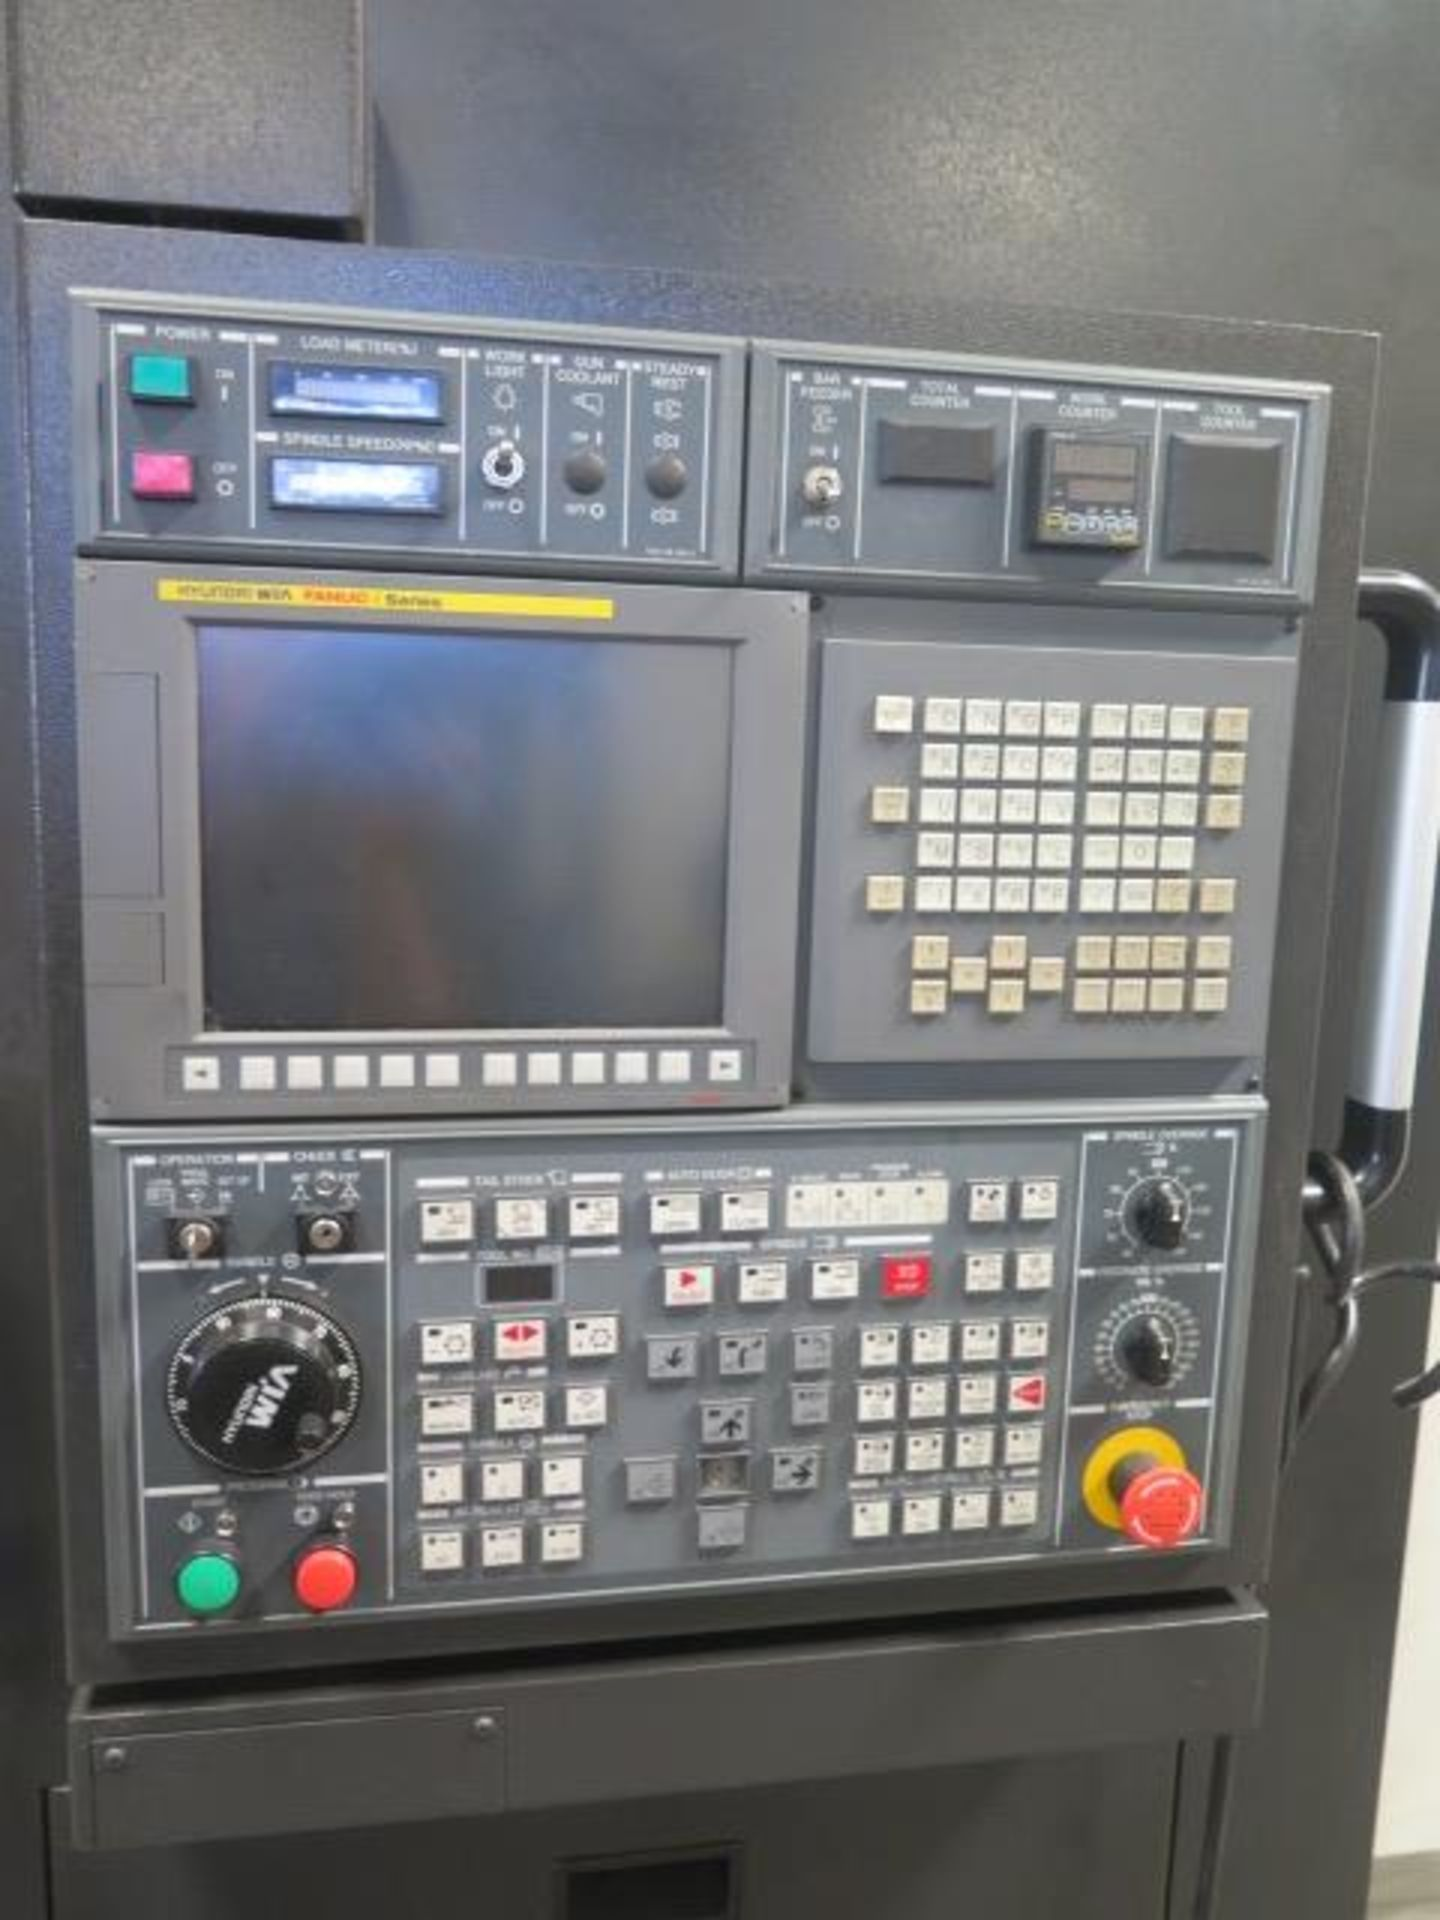 2016 Hyundai WIA L300LA CNC Turning Center s/n G3726-0083 w/ Fanuc i-Series Controls, SOLD AS IS - Image 4 of 20